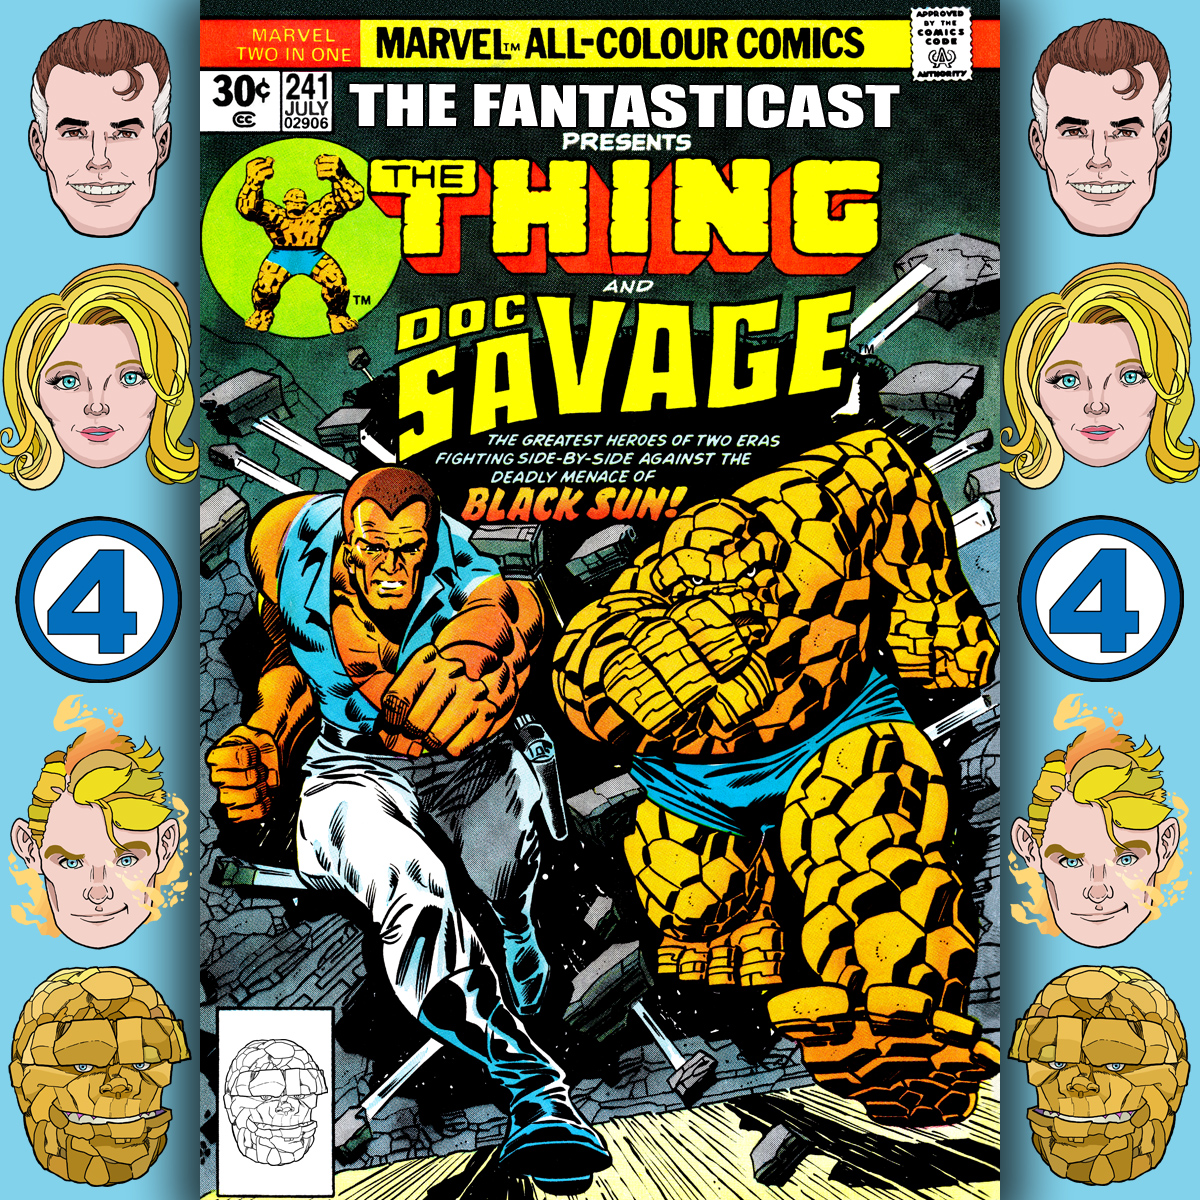 The Fantasticast Episode 241